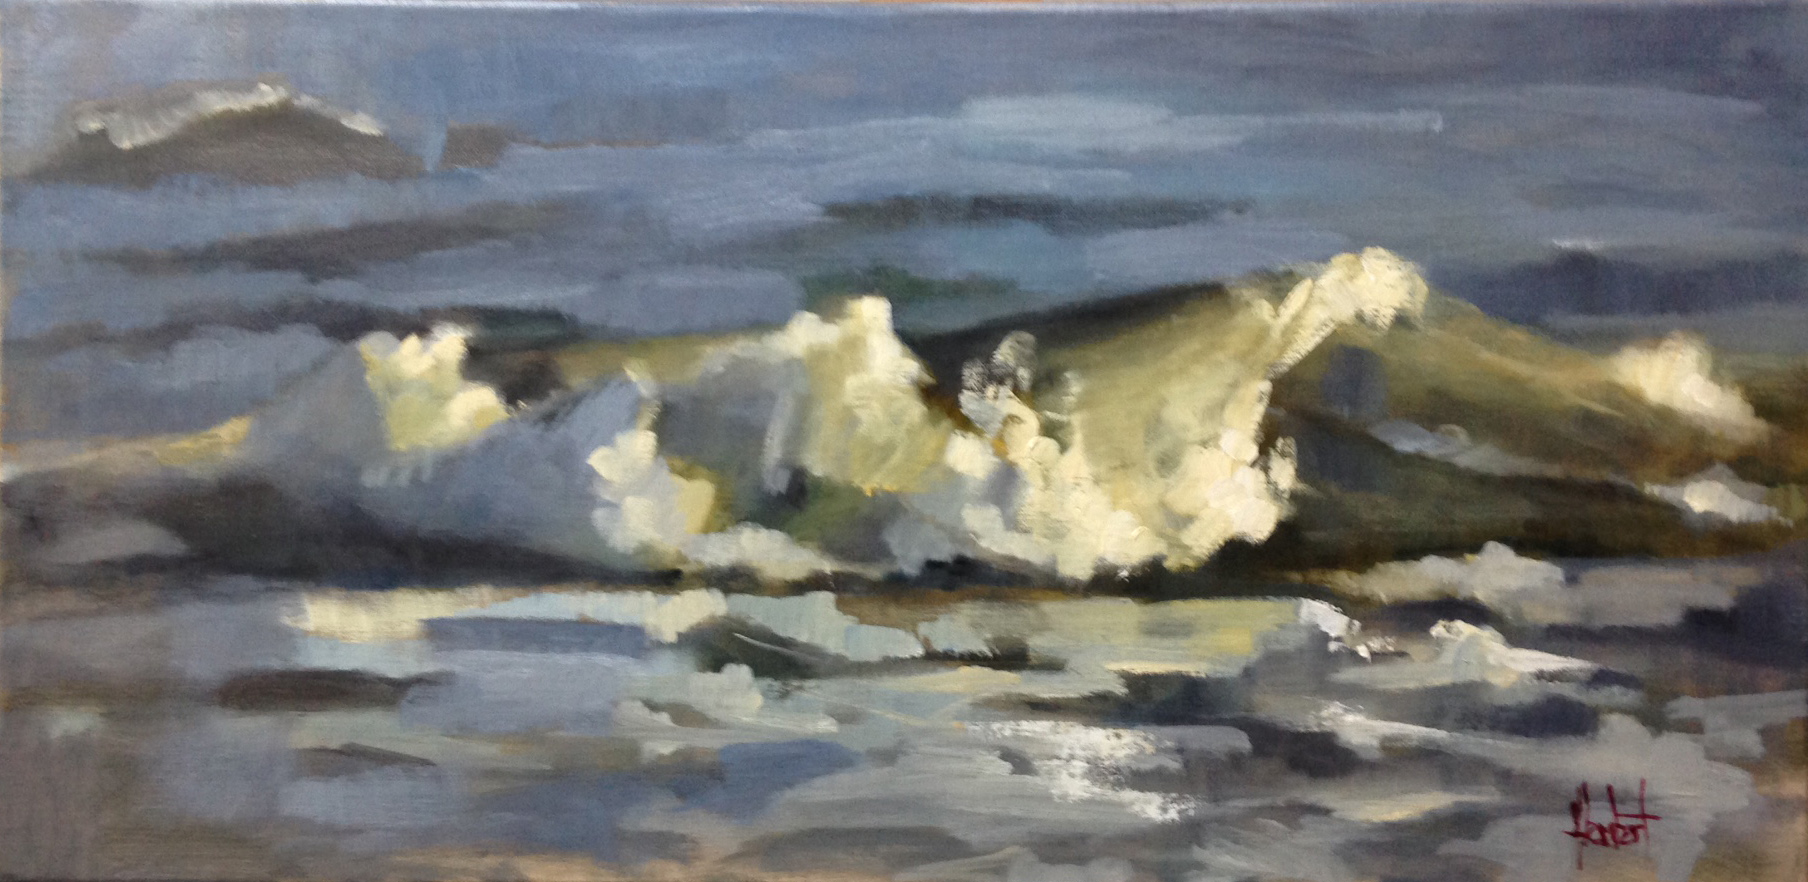 """I spent three days at Folly beach last week on my mini vacation. I wanted to paint the seas, walk on the beach, and sit by the water at sunsets. This piece is one of the ones I worked on from my deck. Sometimes the roll creates these transparent greens that are just wonderful to paint!  """"The Curl"""" 12x24 oil on linen $1800 for Christmas!"""